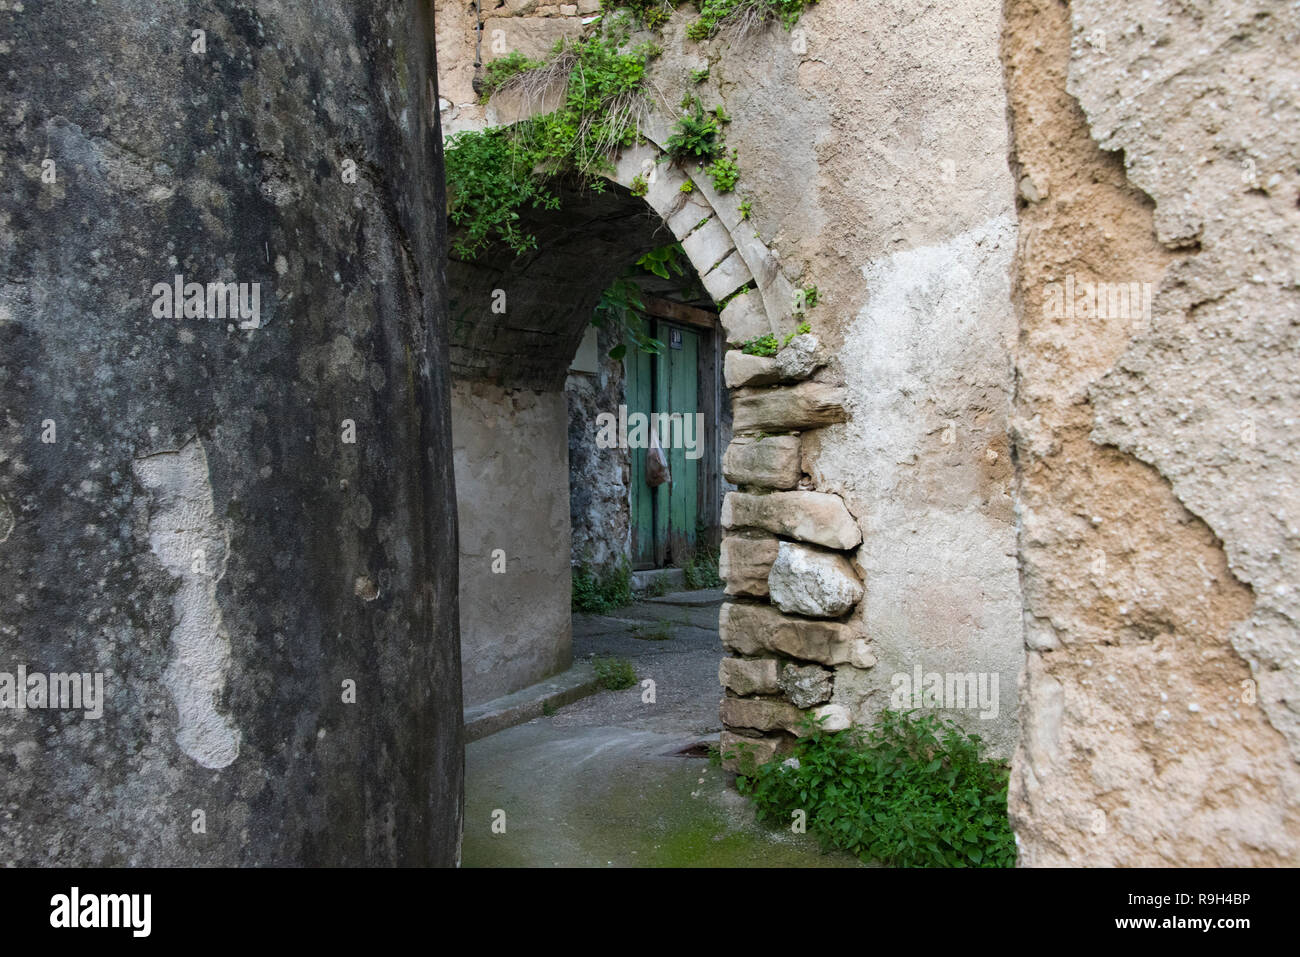 Old house, Mostar, Bosnia and Herzegovina - Stock Image